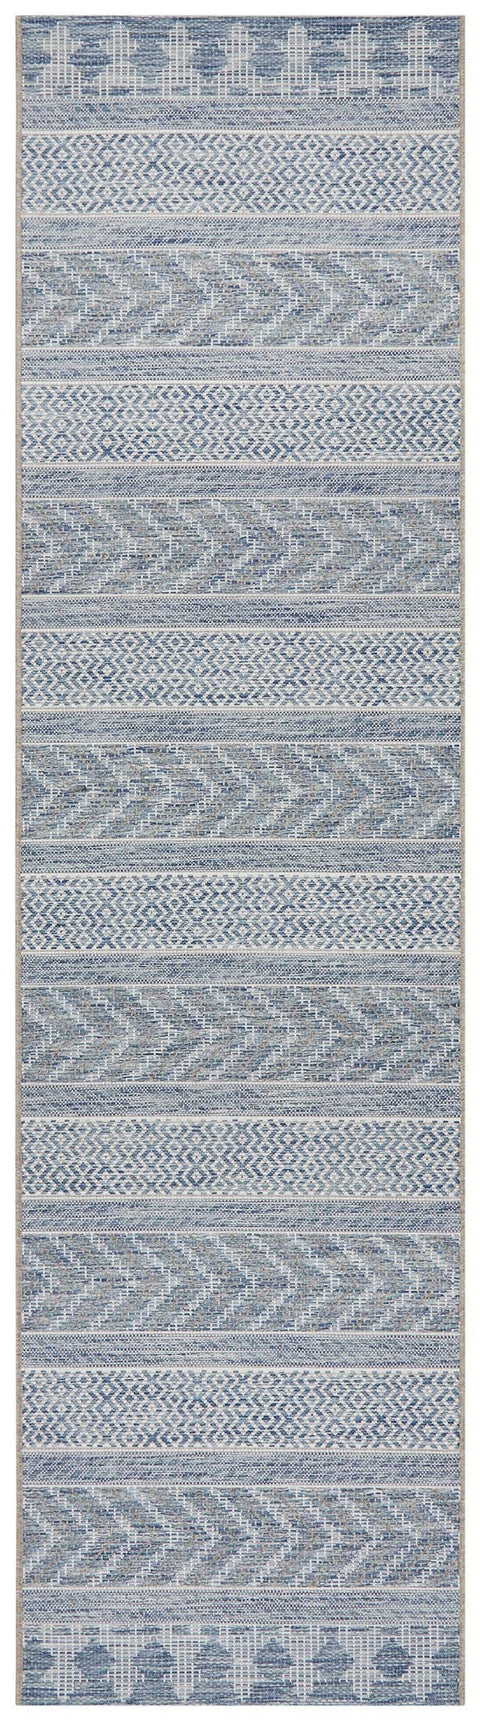 Bayamo Blue Tribal Runner Rug